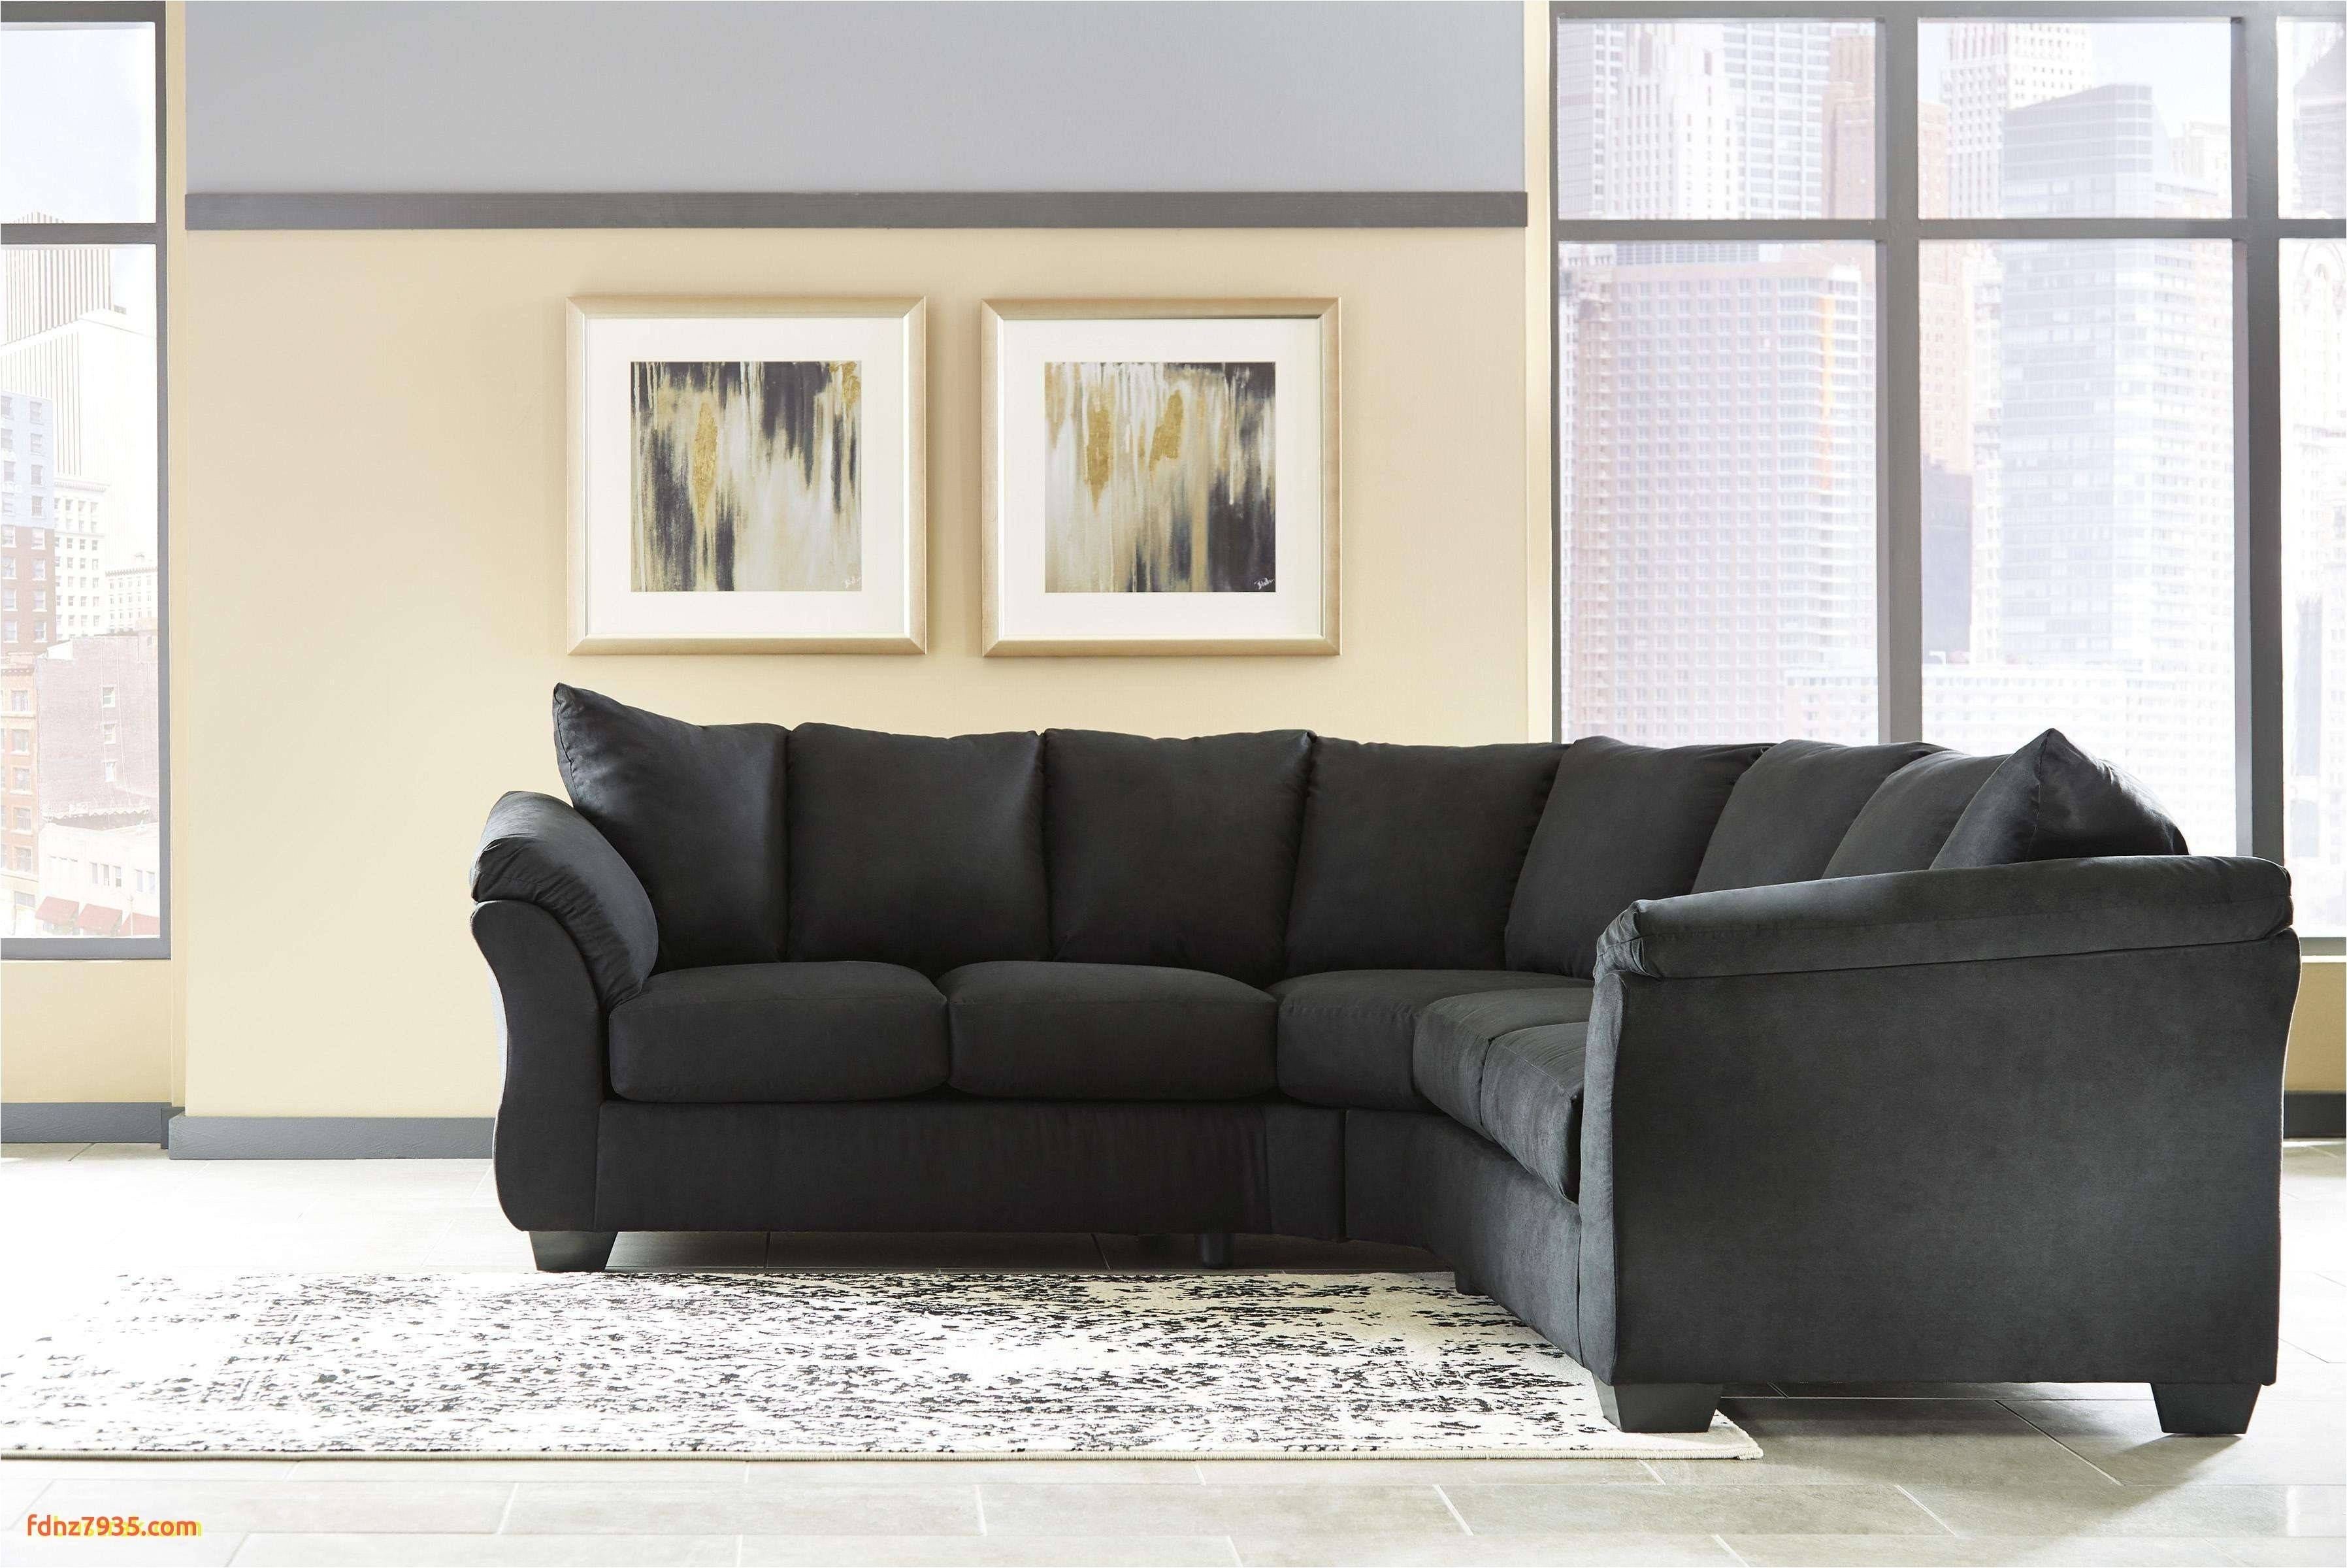 sofa ke design furniture luxury luxury l shaped sofa home interior design list of interior of sofa ke design furniture